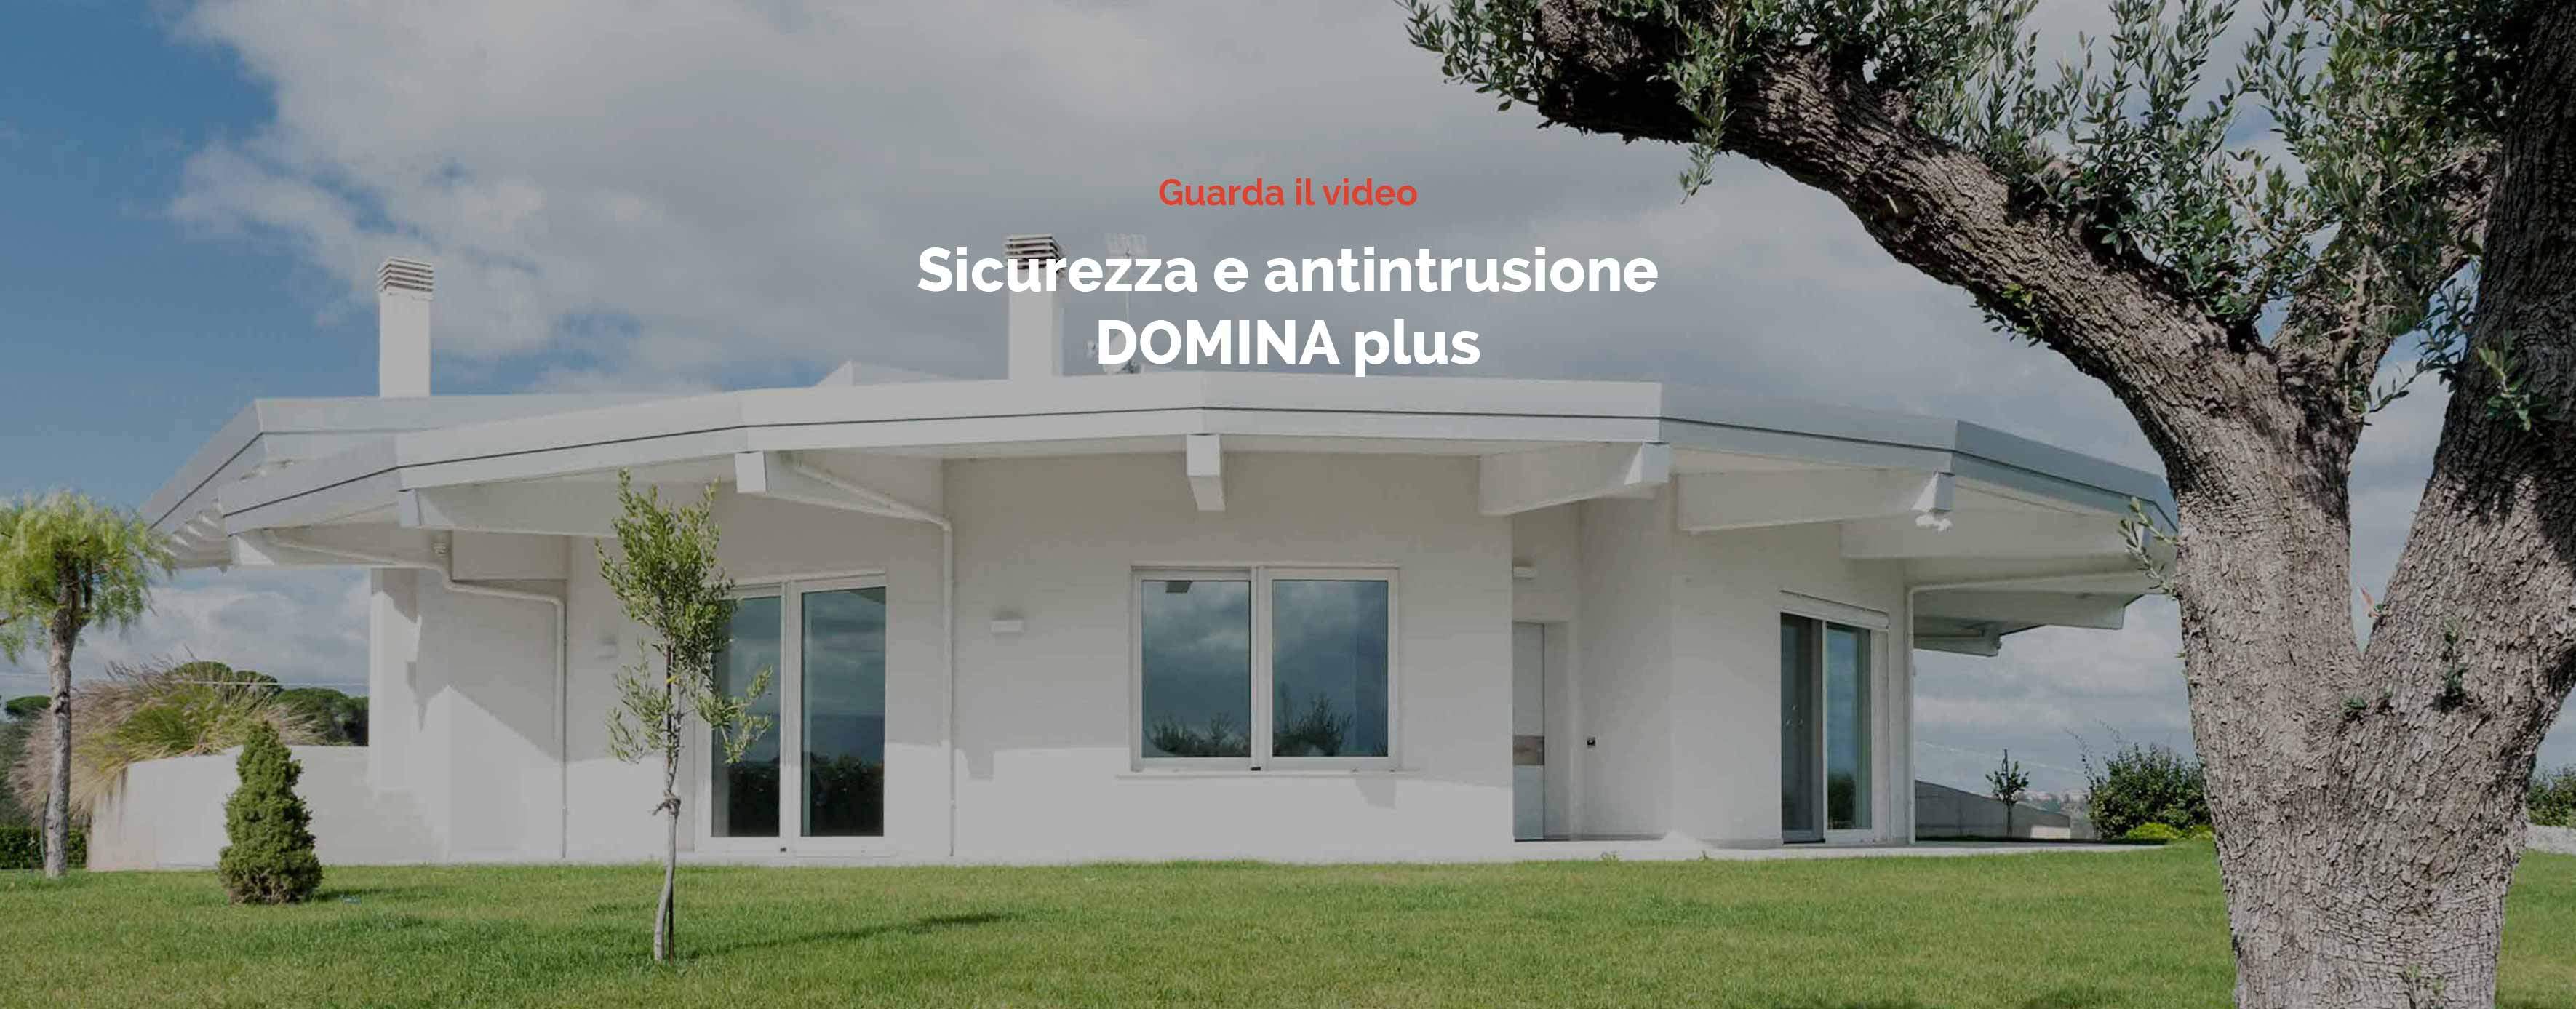 Video Domotica Sicurezza e Anti Intrusione - Ave Domina Plus